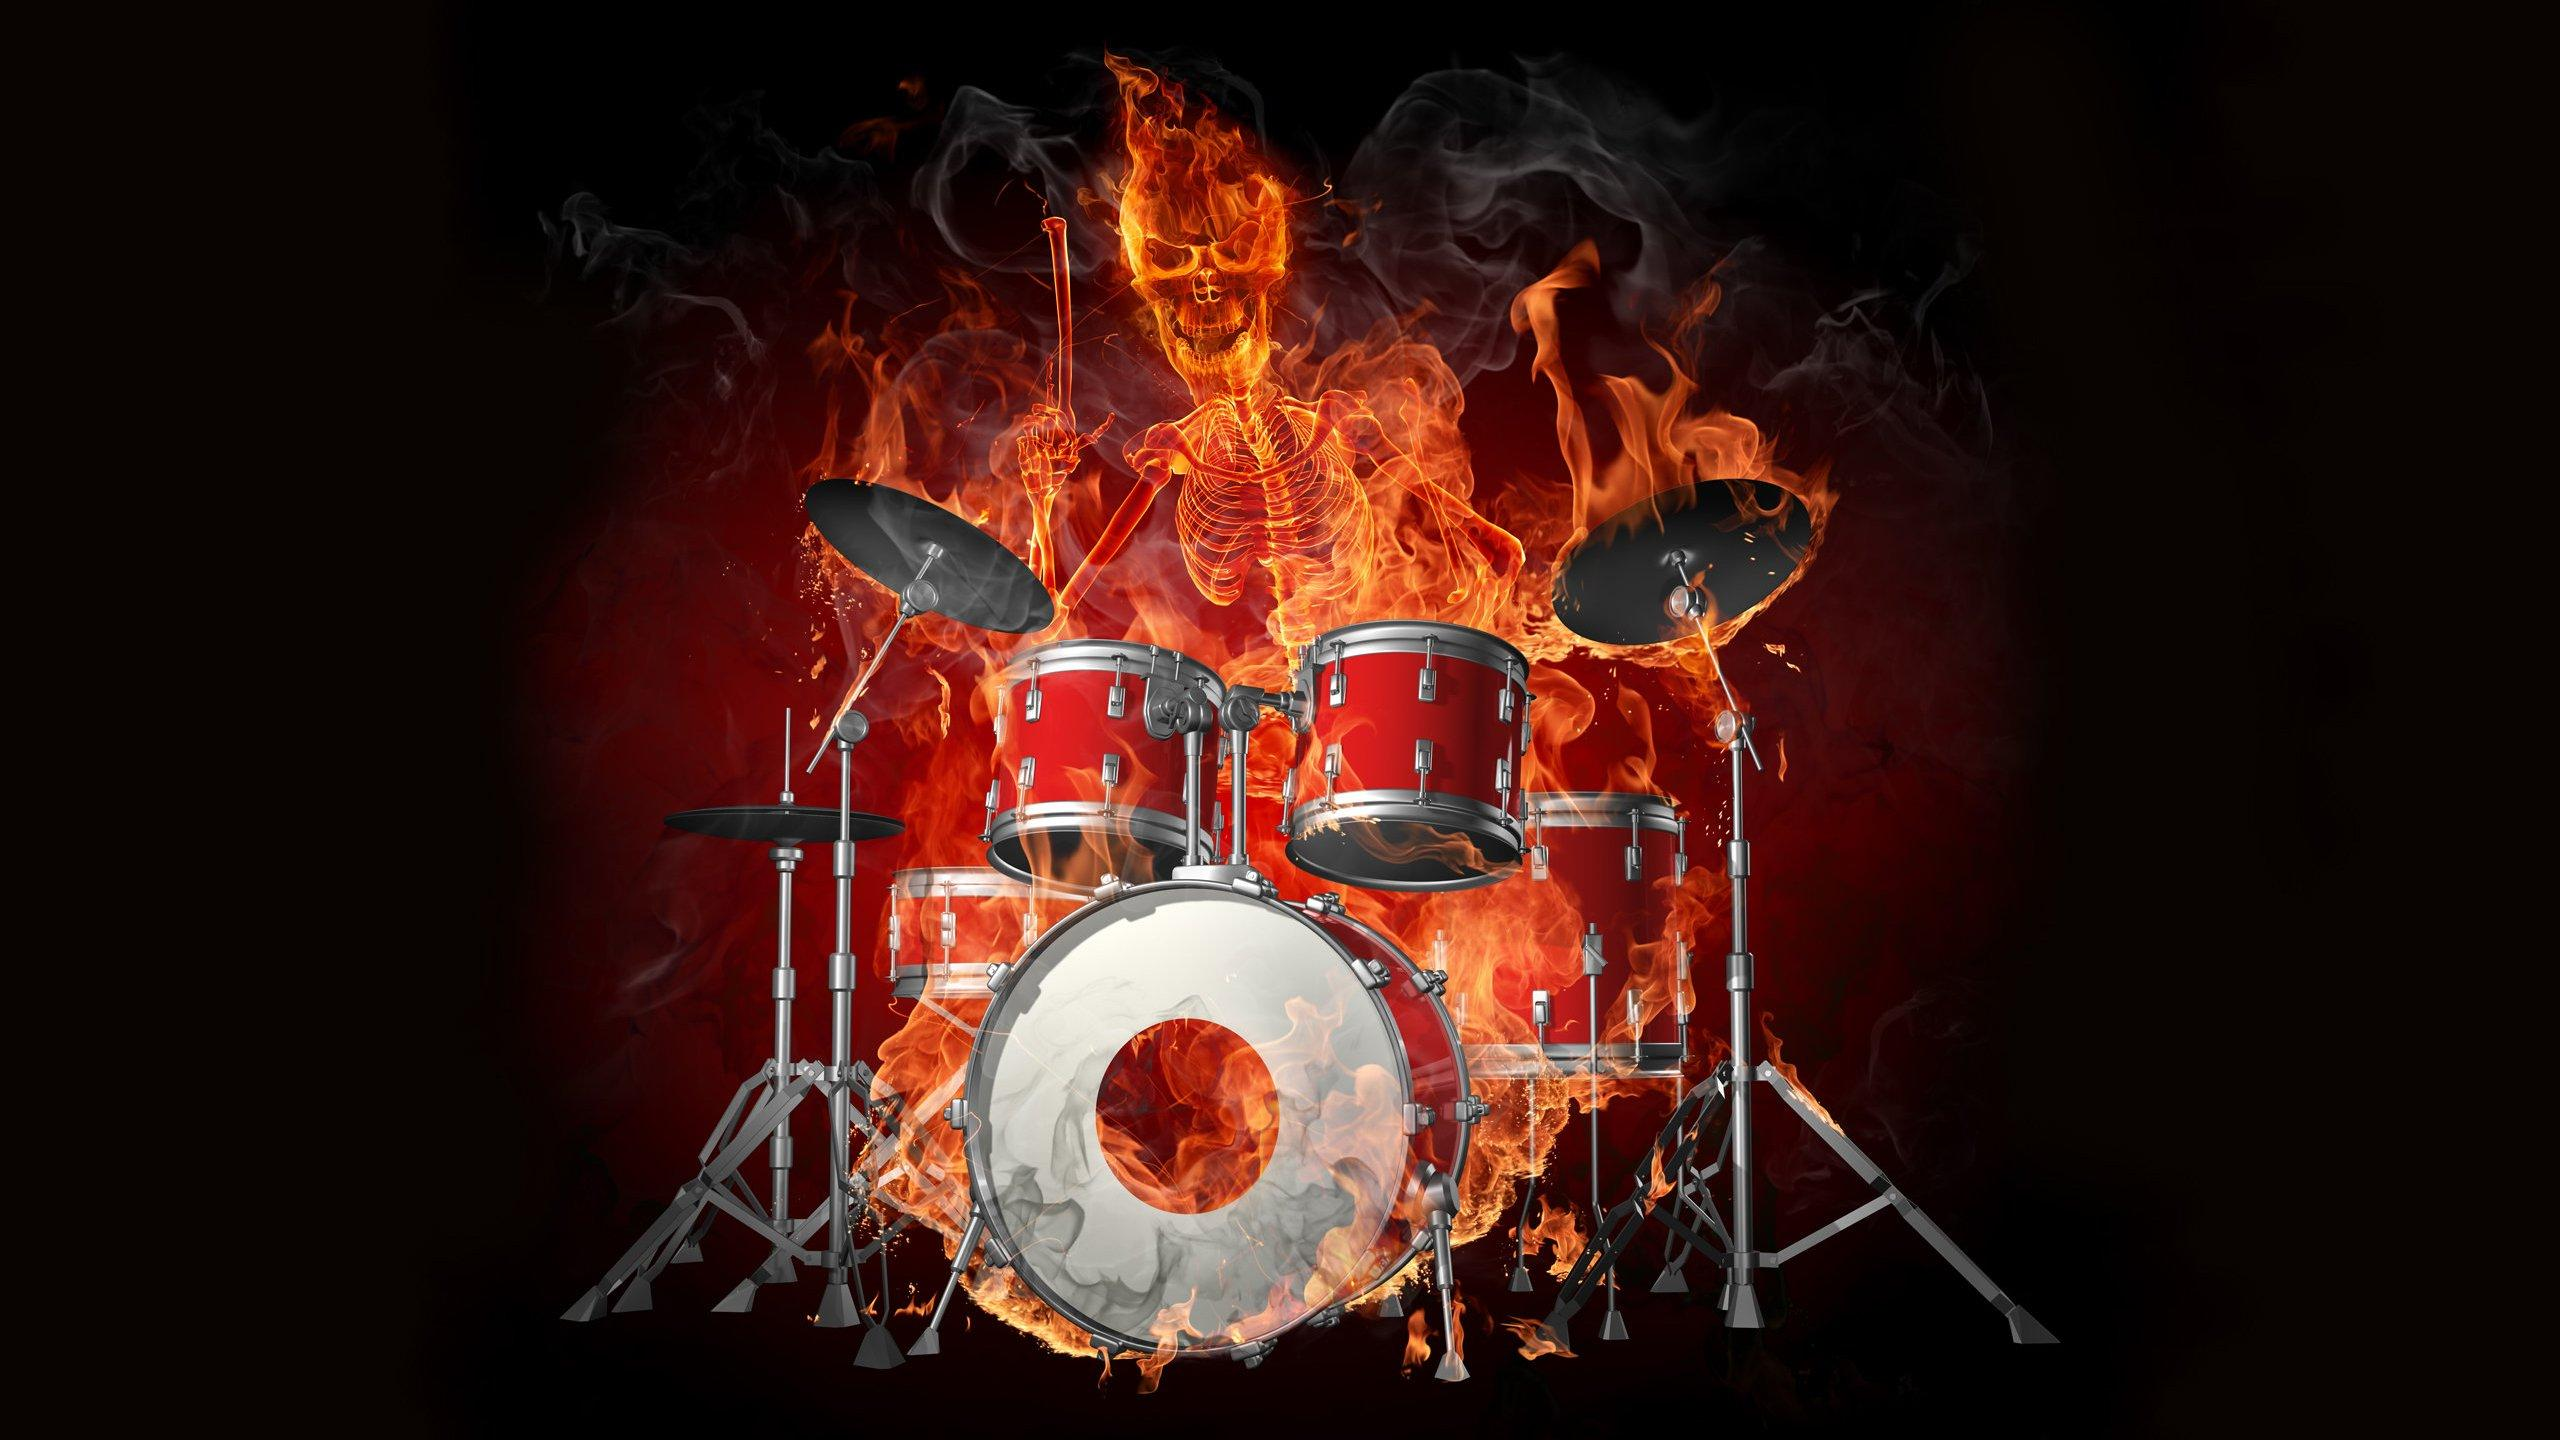 Awesome Skulls Quot N Quot Stuff Images Drums Fire Demon Skull